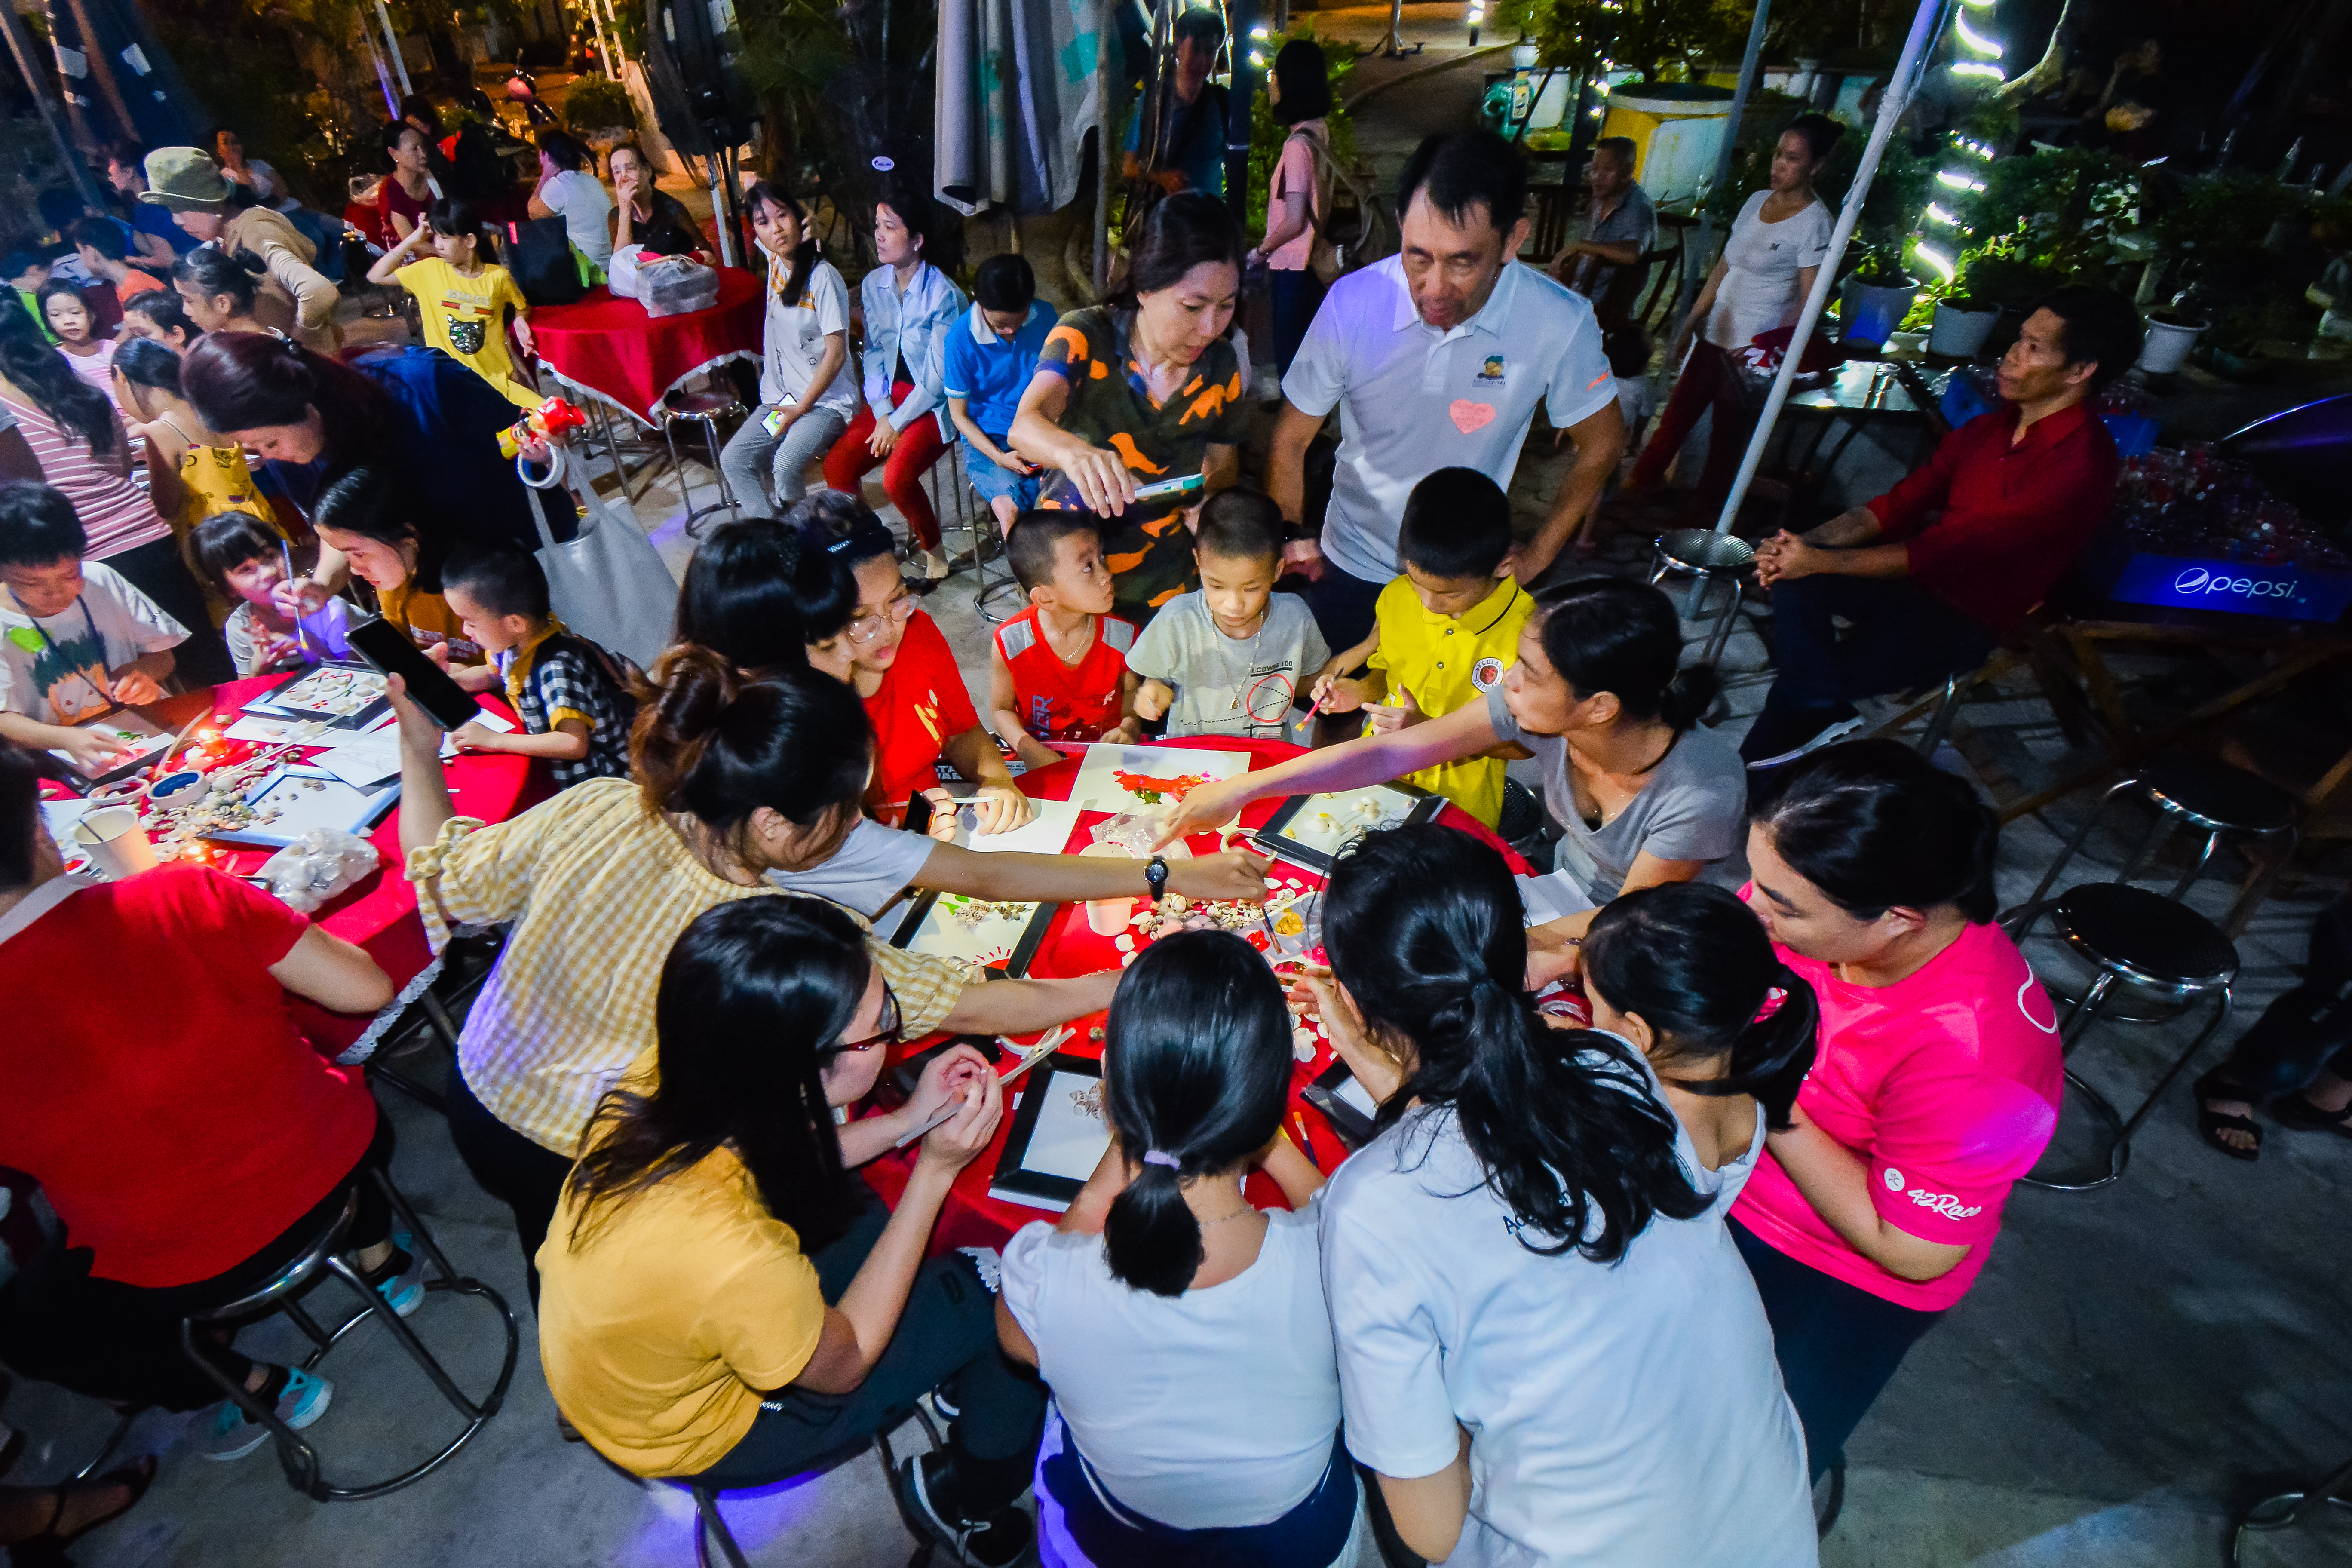 Sponsors and children partaking in activities together